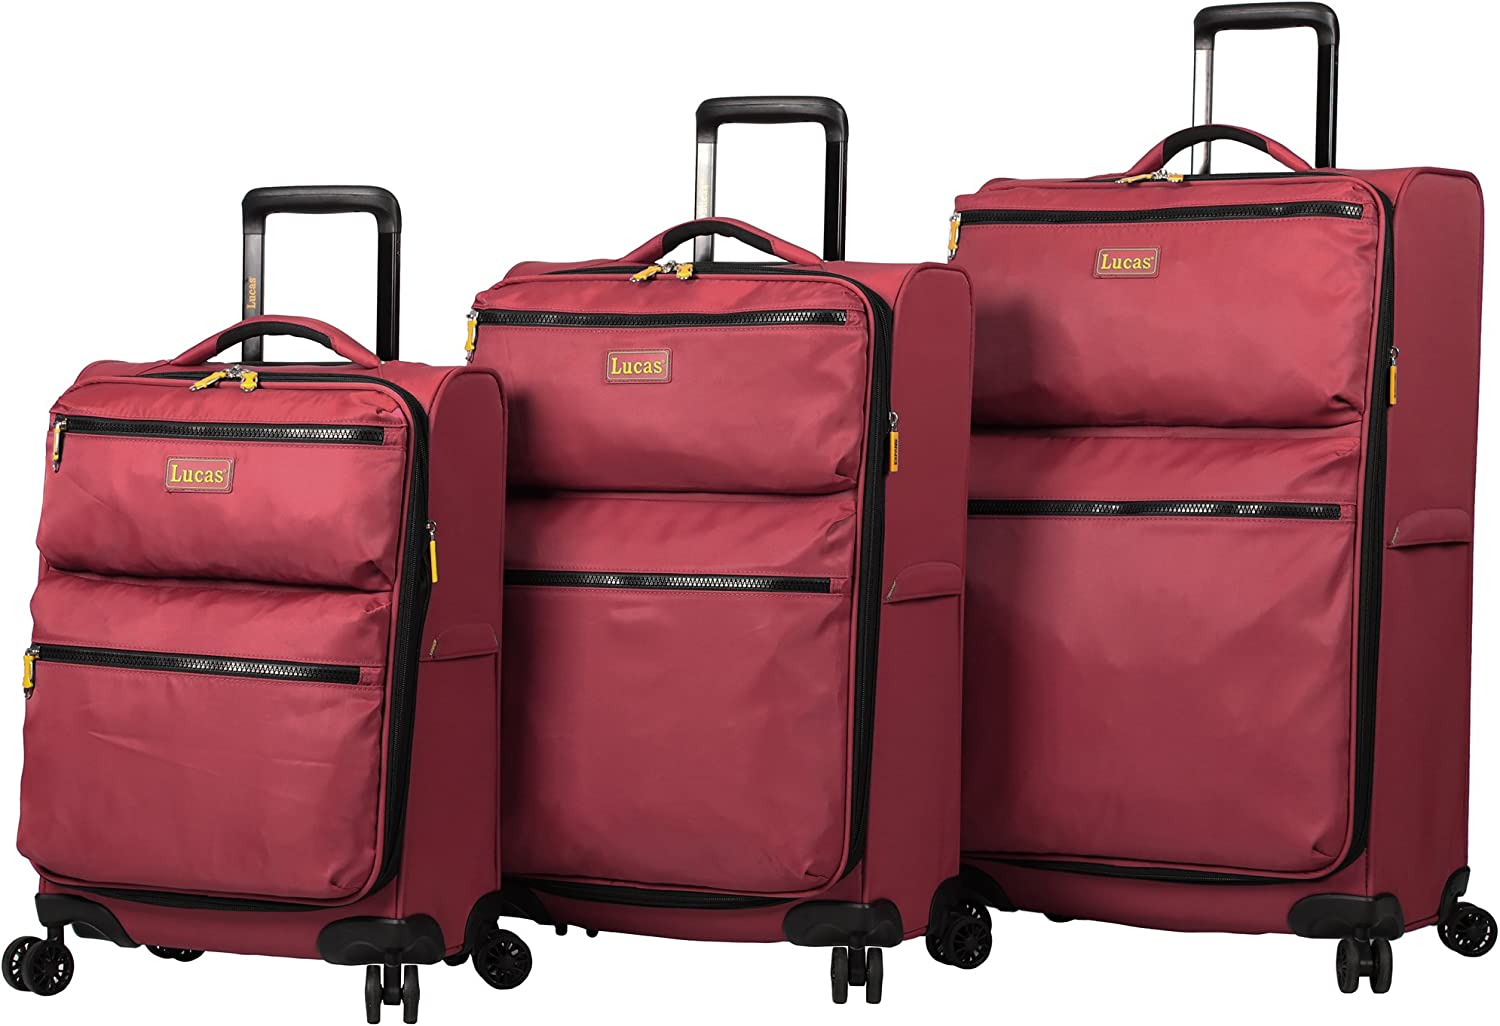 YD Luggage Set Trolley Case Polyester//PC 2 Colors wear-Resistant Anti-Scratch TSA Combination Lock Scientific partition Dry and Wet Separation Mute Caster Large Capacity Boarding Storage Box